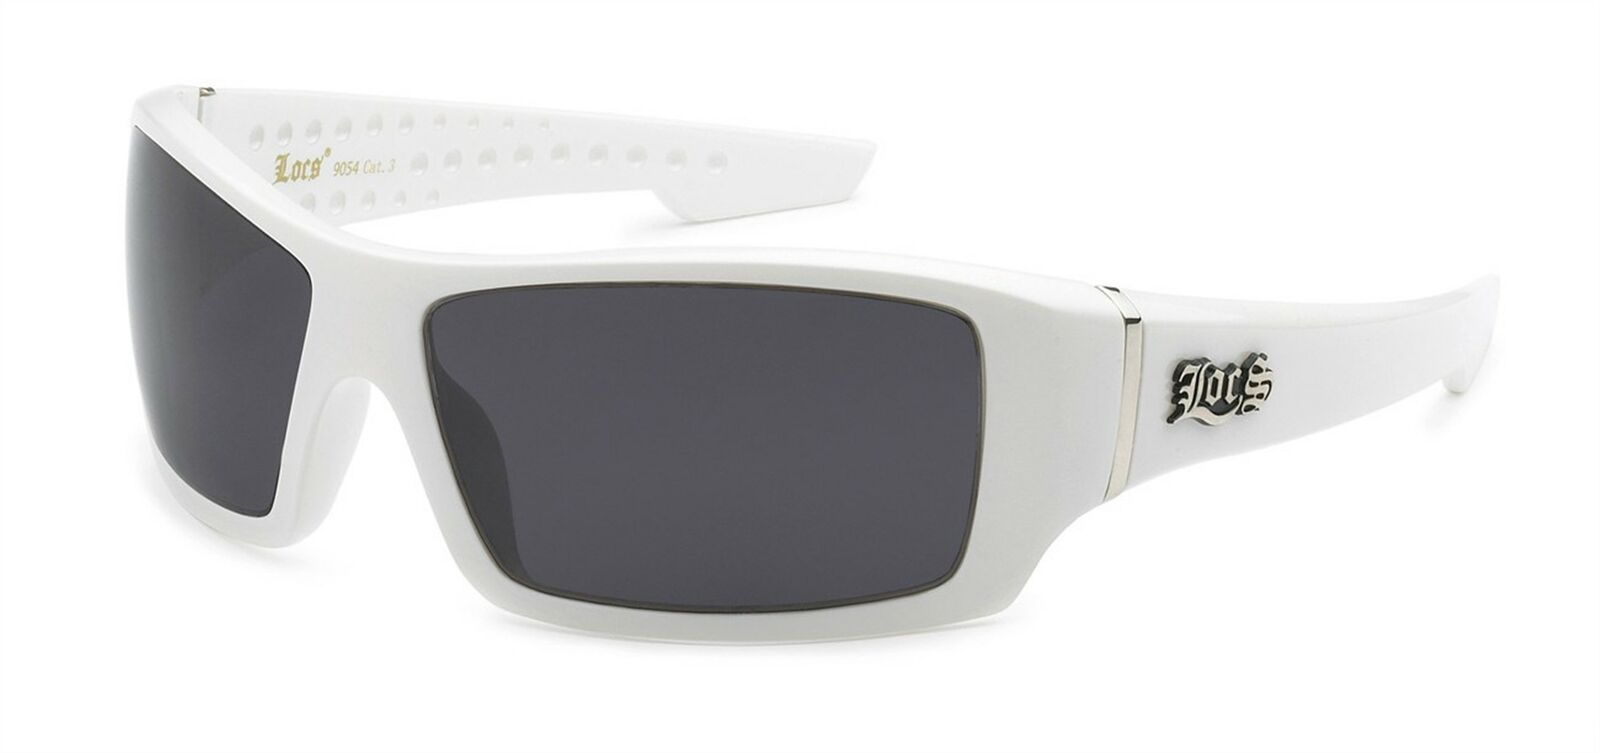 Frame About Shades Biker Locs Dark Mens White Details Lenses 9054 Sunglasses qGMjVSzLUp